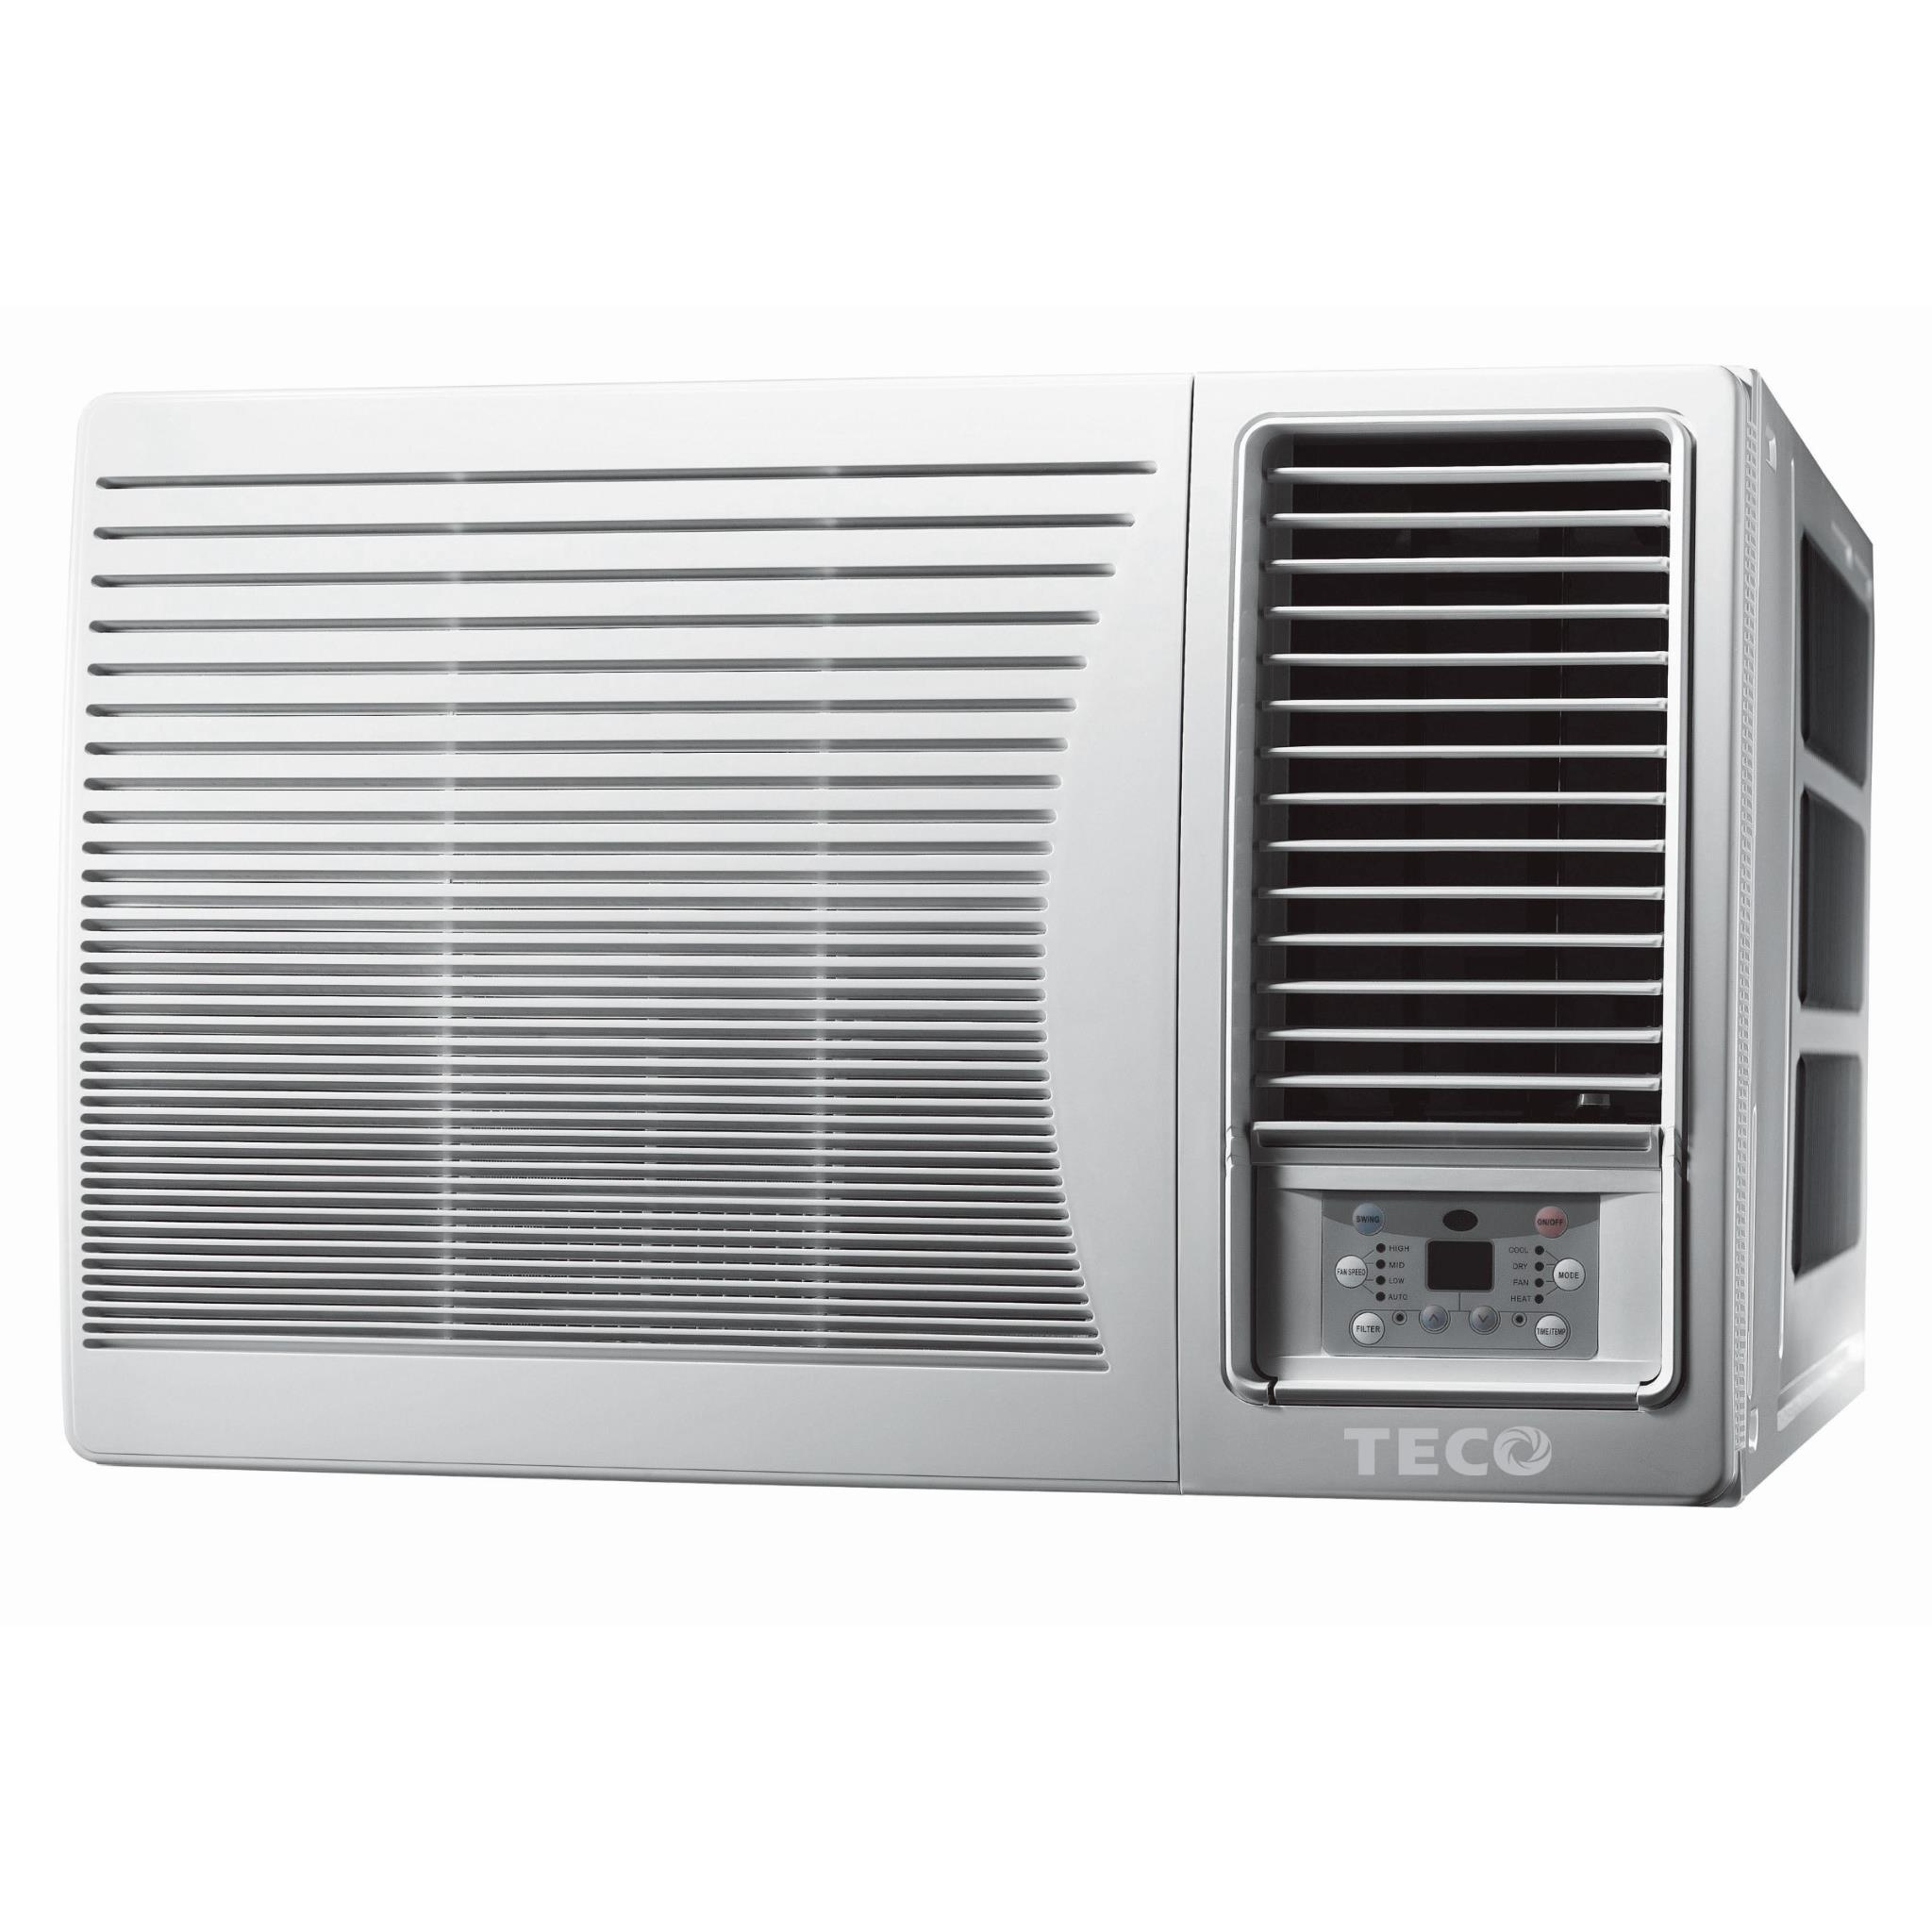 Teco 6.0kW Window/Wall Room Cooling Only Air Conditioner